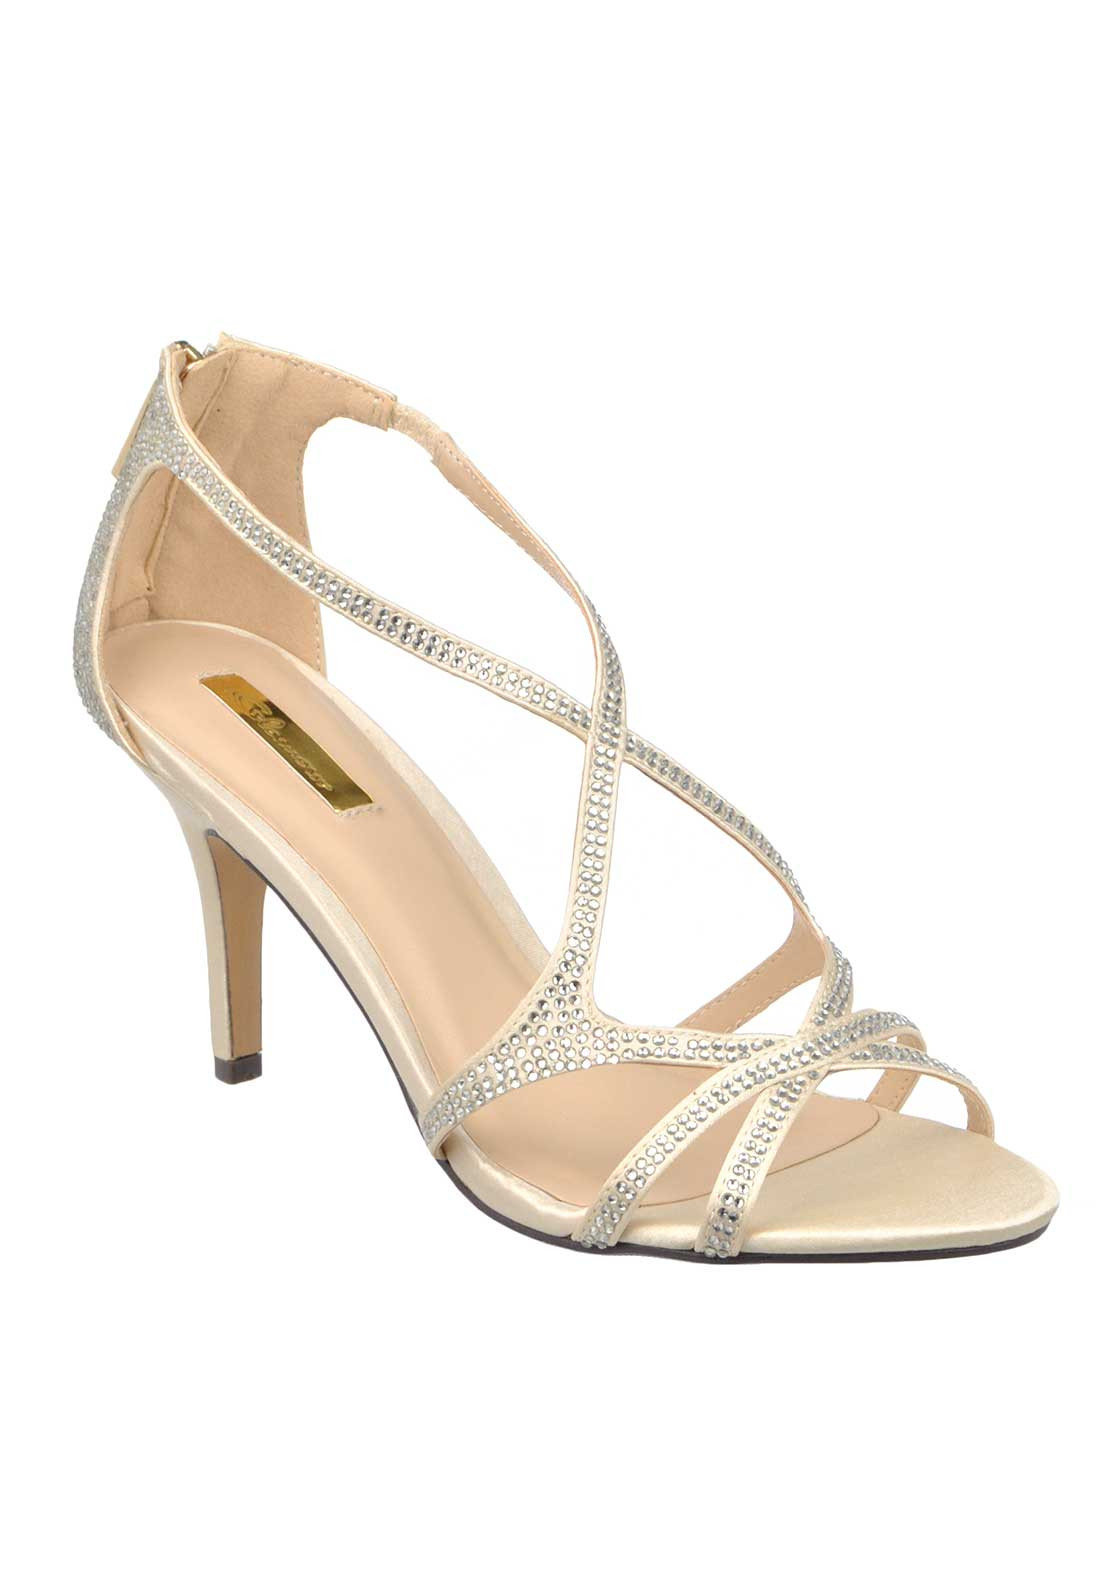 Glamour Satin Gem Embellished Strappy Heeled Sandals, Beige